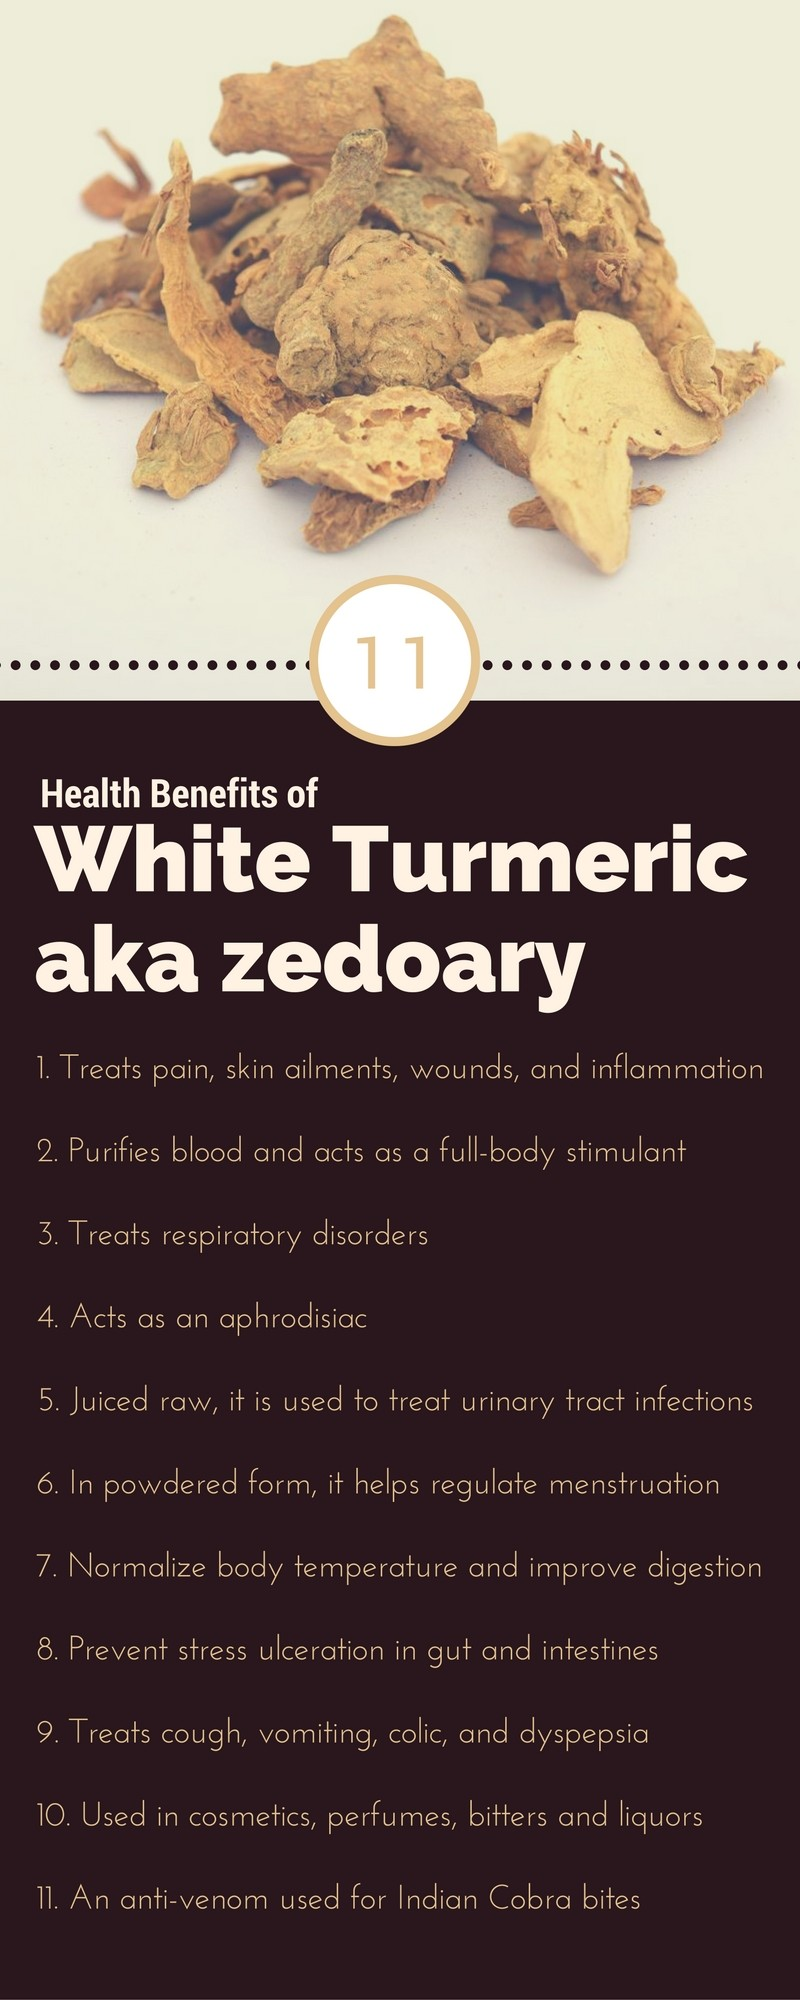 Zedoary benefits infographic